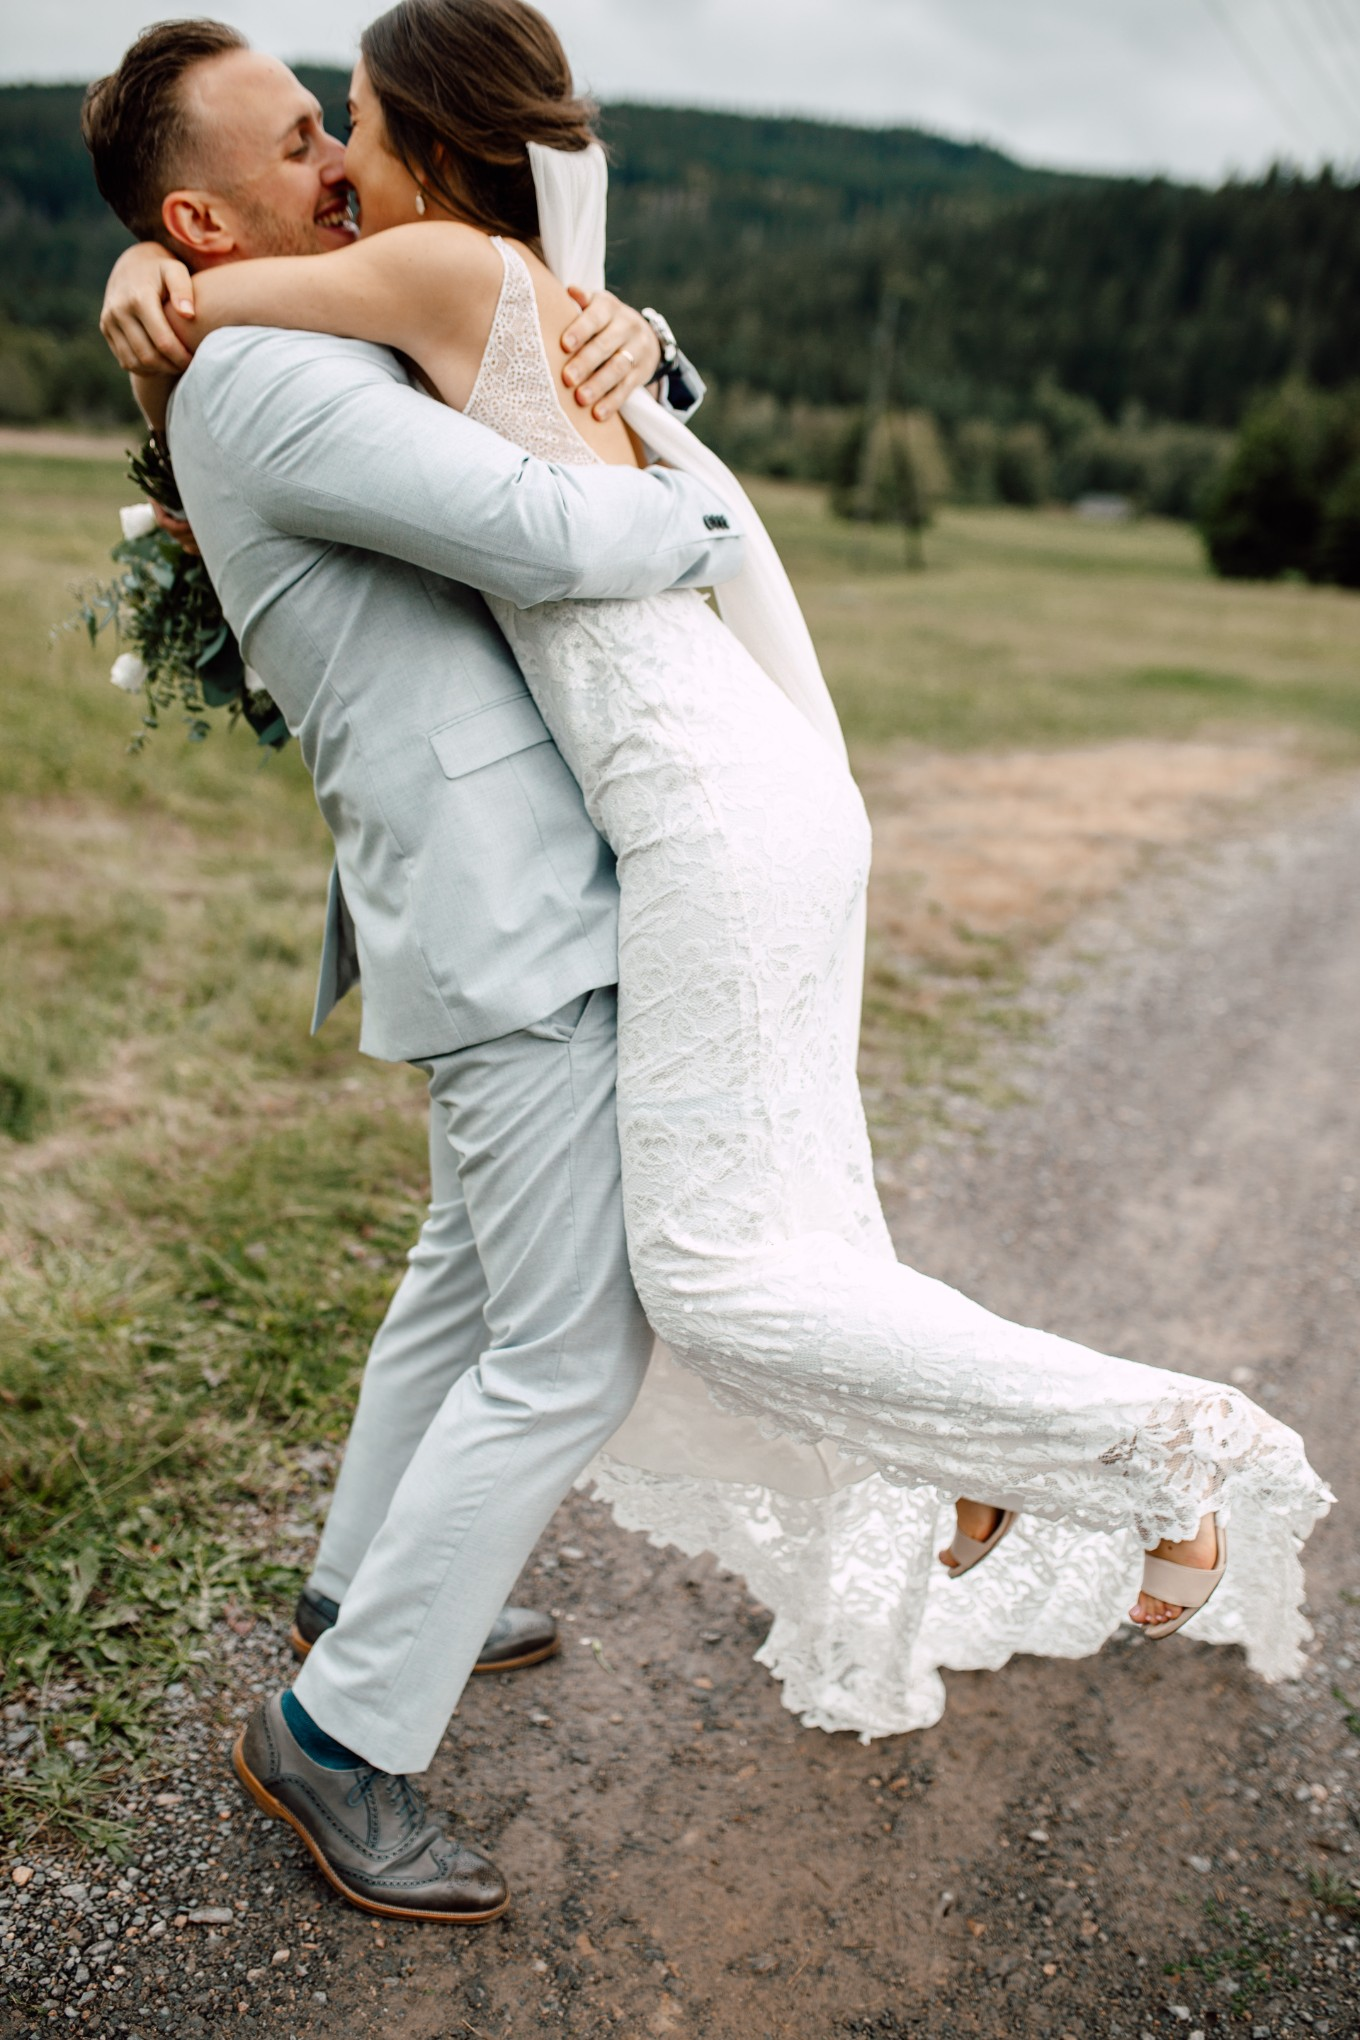 Henslerhof-Schwarzwald-Pia-Anna-Christian-Wedding-Photography-JR-P-40.jpg